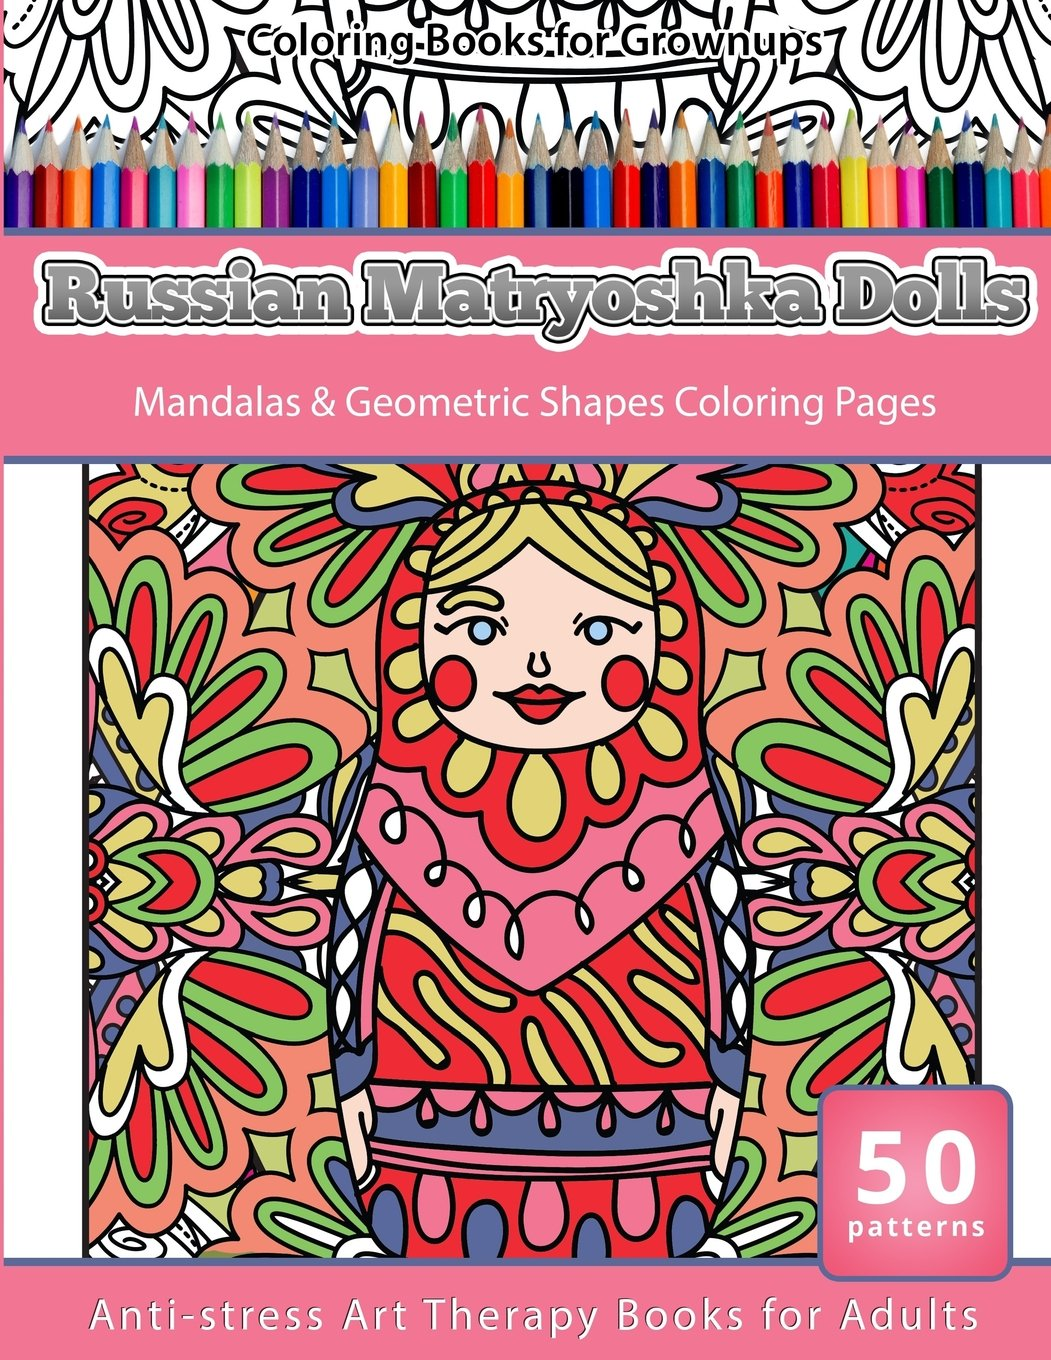 Amazon.com: Coloring Books for Grownups Russian Matryoshka Dolls ...